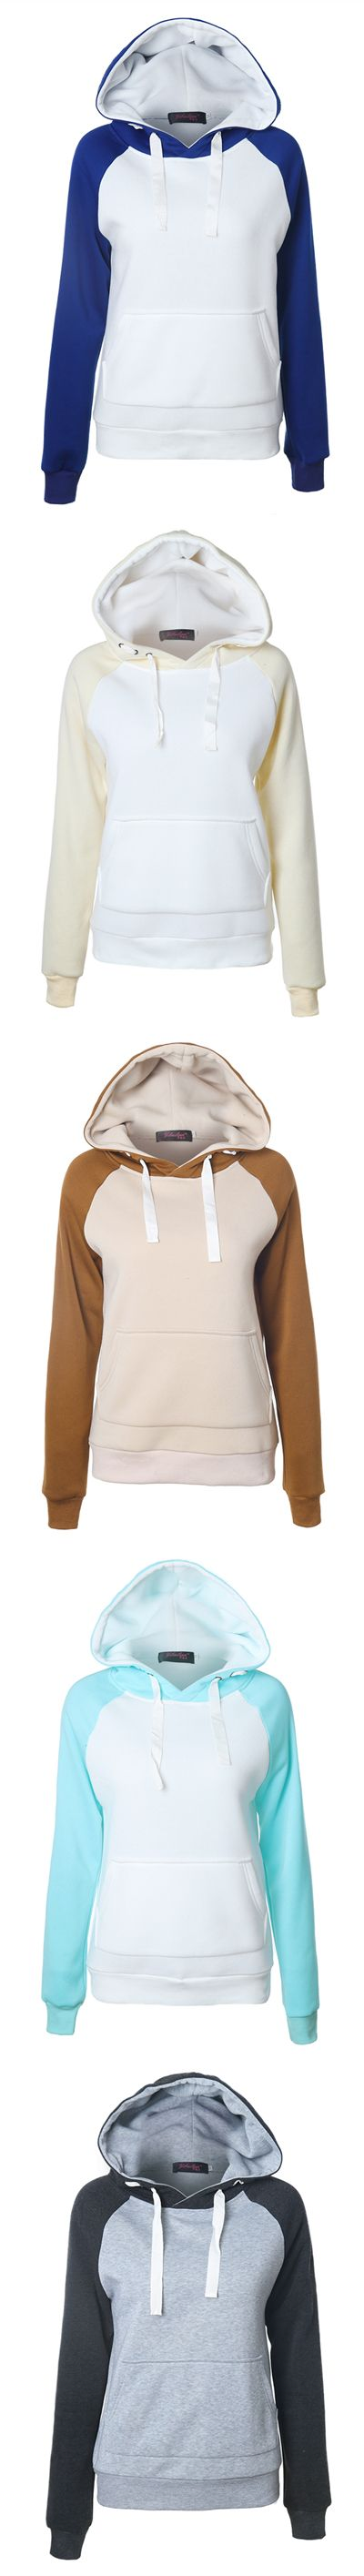 It doesn't get much better than a relaxing day.Shop this hoodie without doubt today at FIREVOGUE.COM!